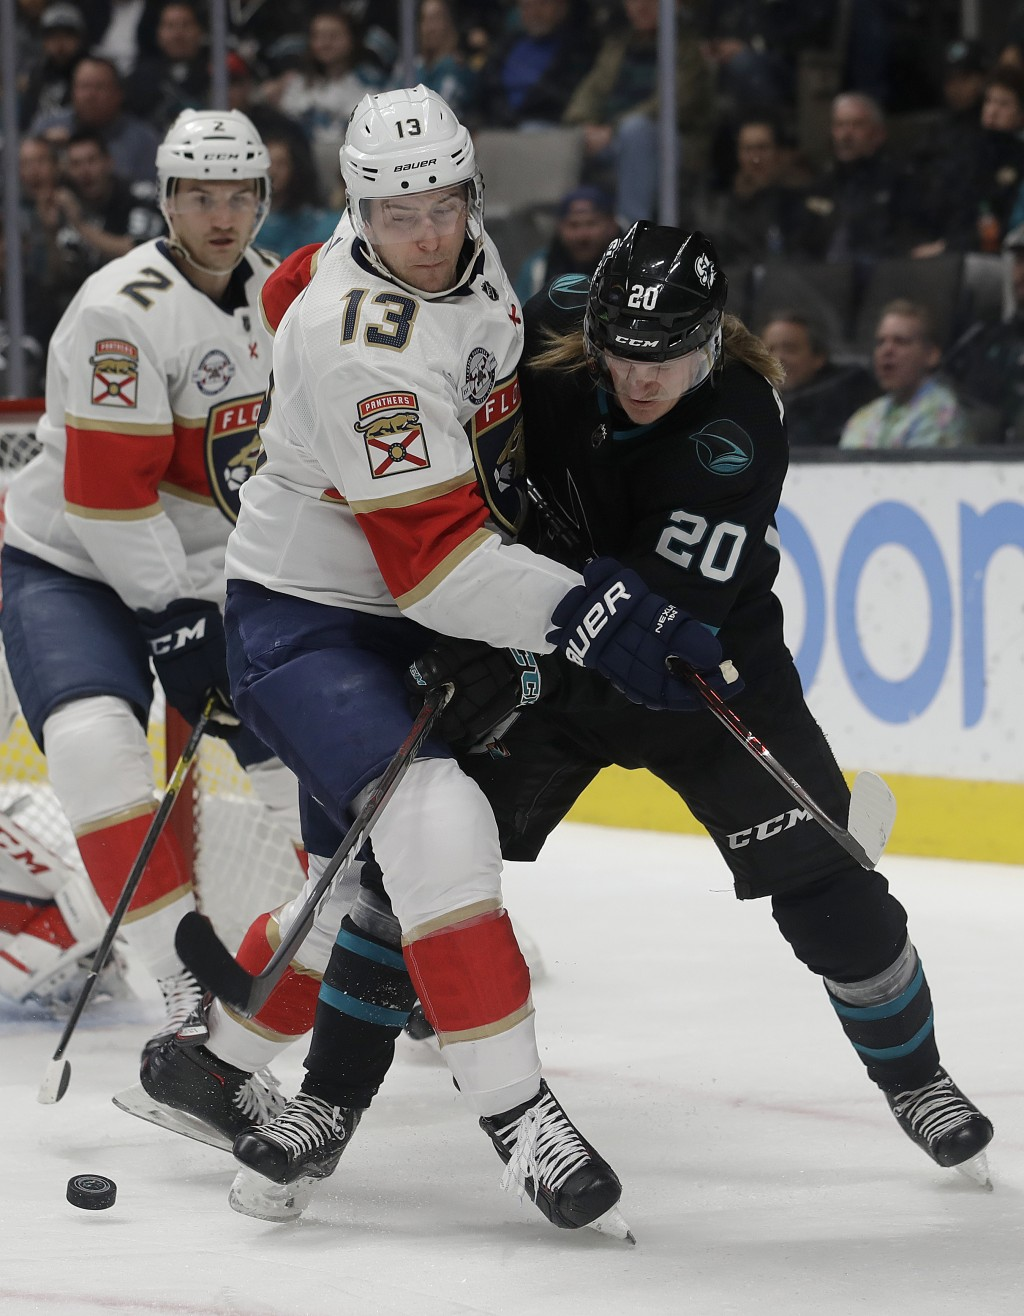 San Jose Sharks left wing Marcus Sorensen (20) reaches for the puck against Florida Panthers defenseman Mark Pysyk (13) during the first period of an